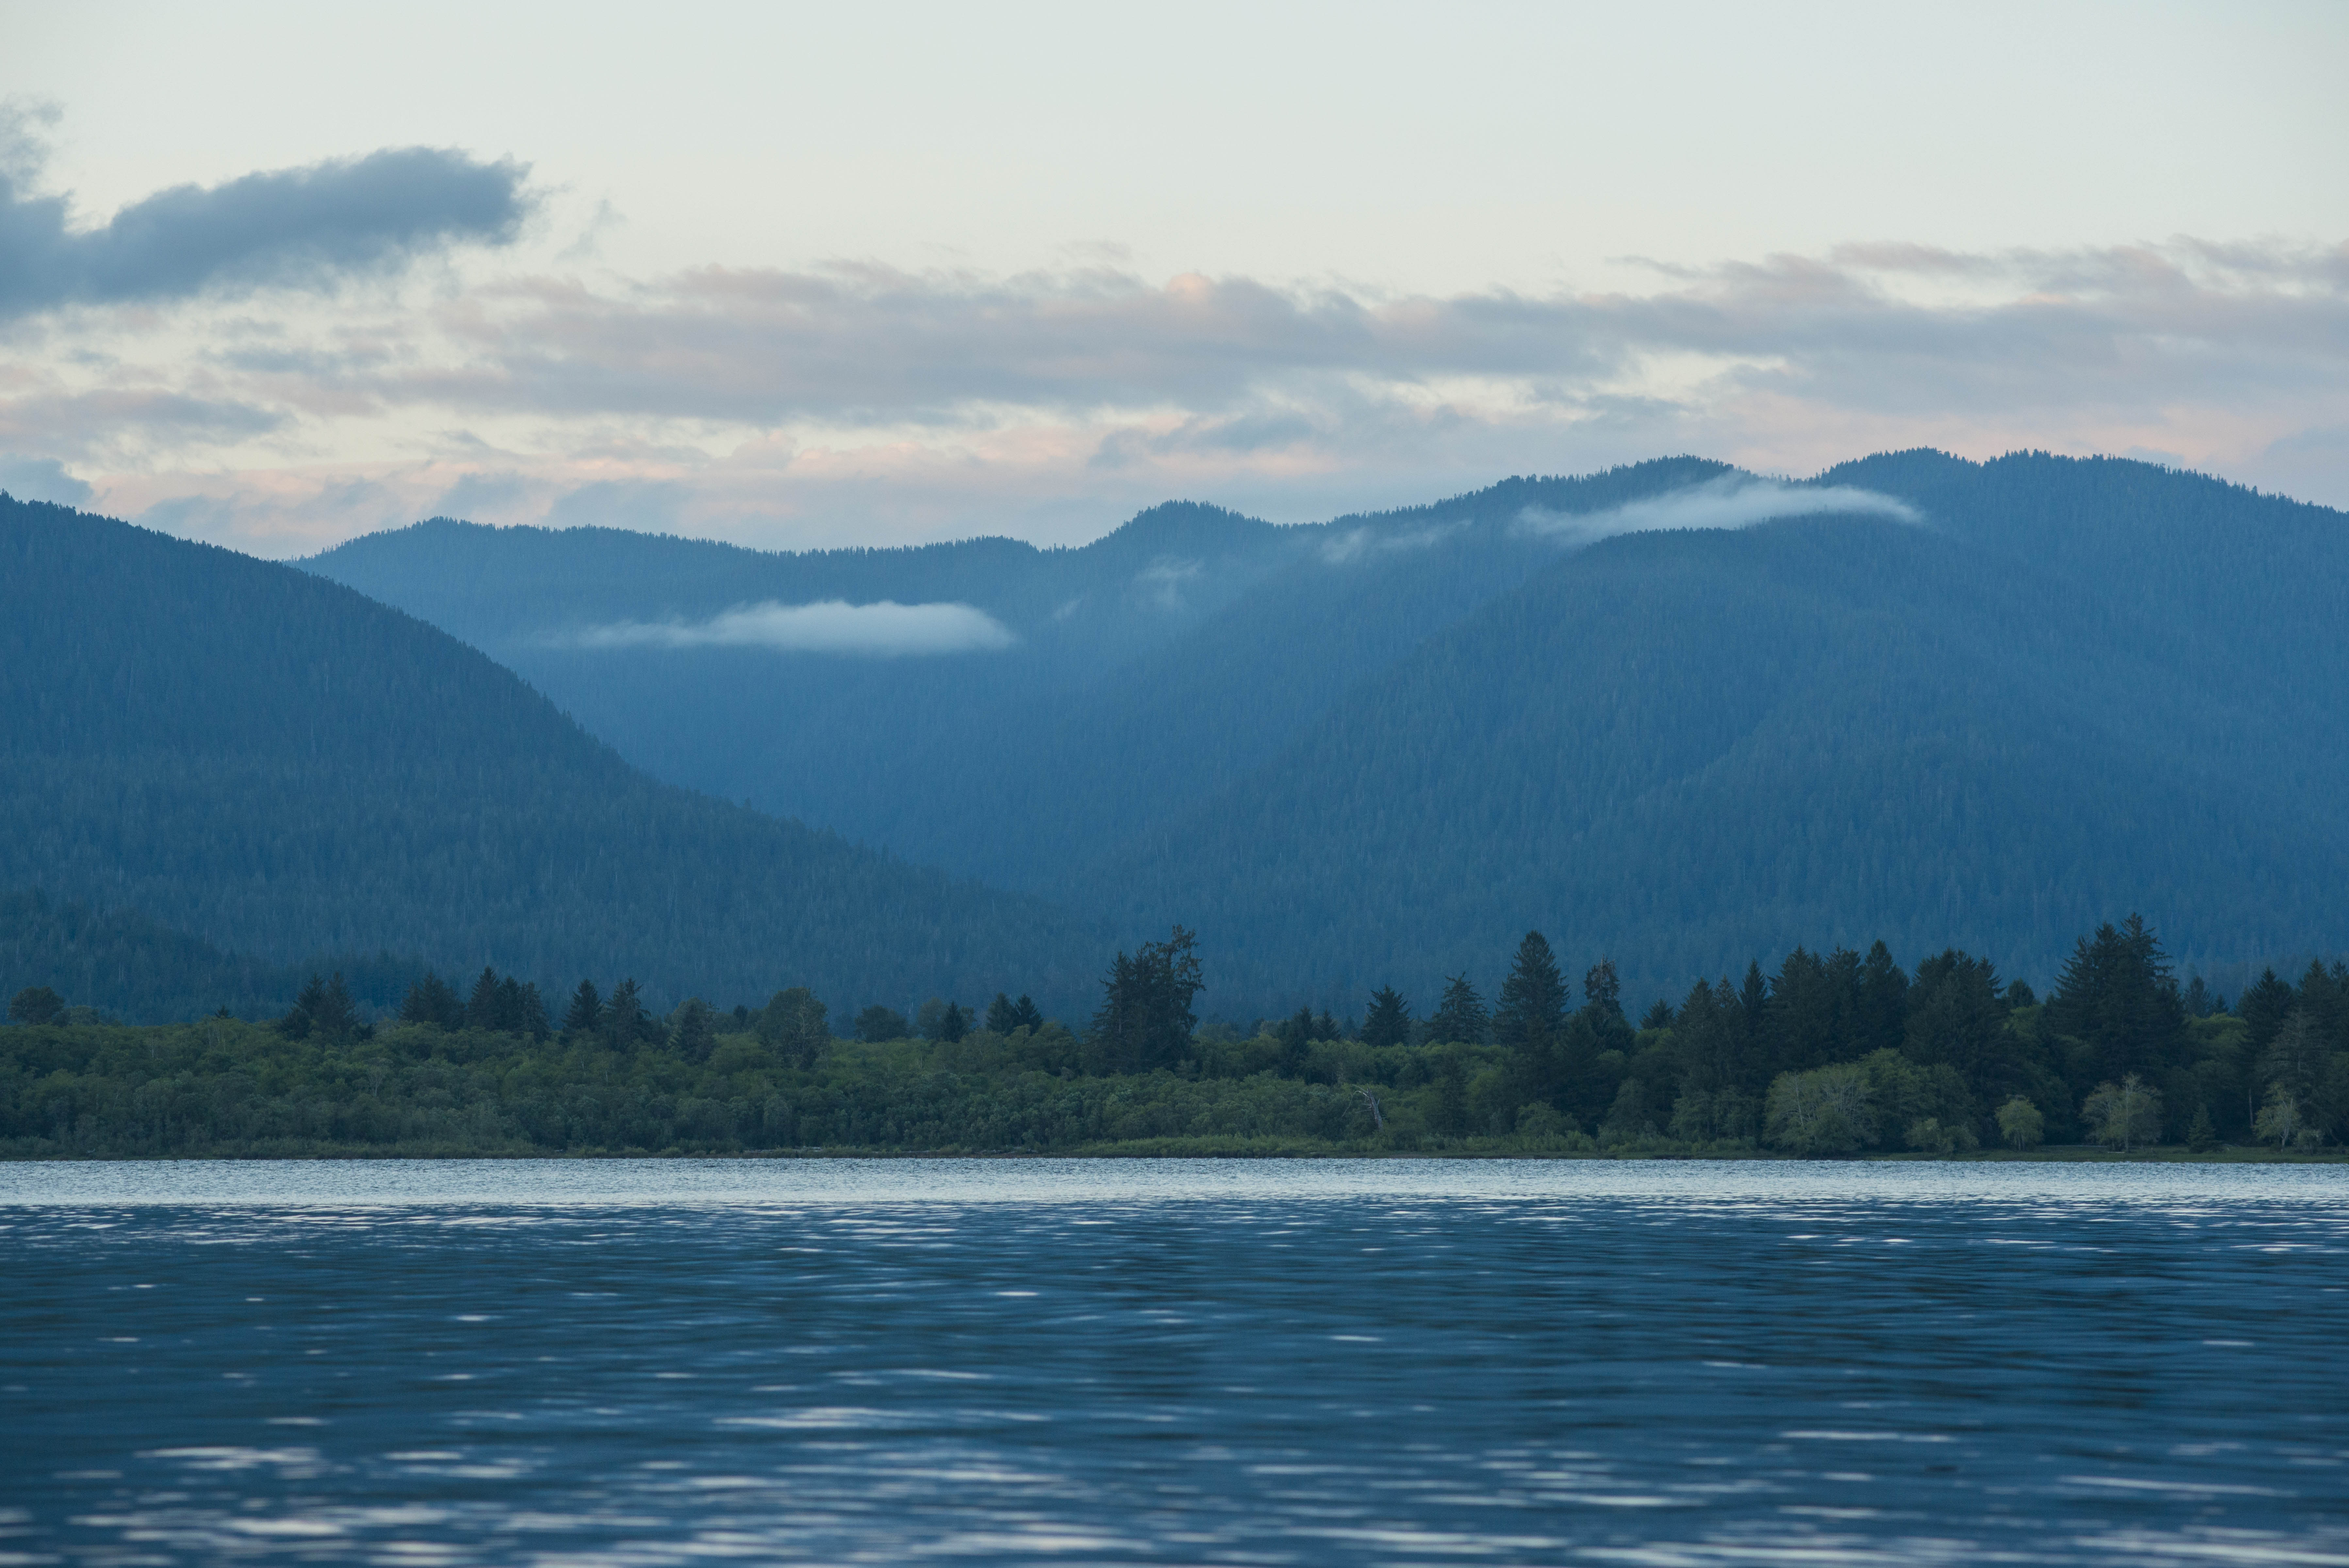 Olympic lake with mountains